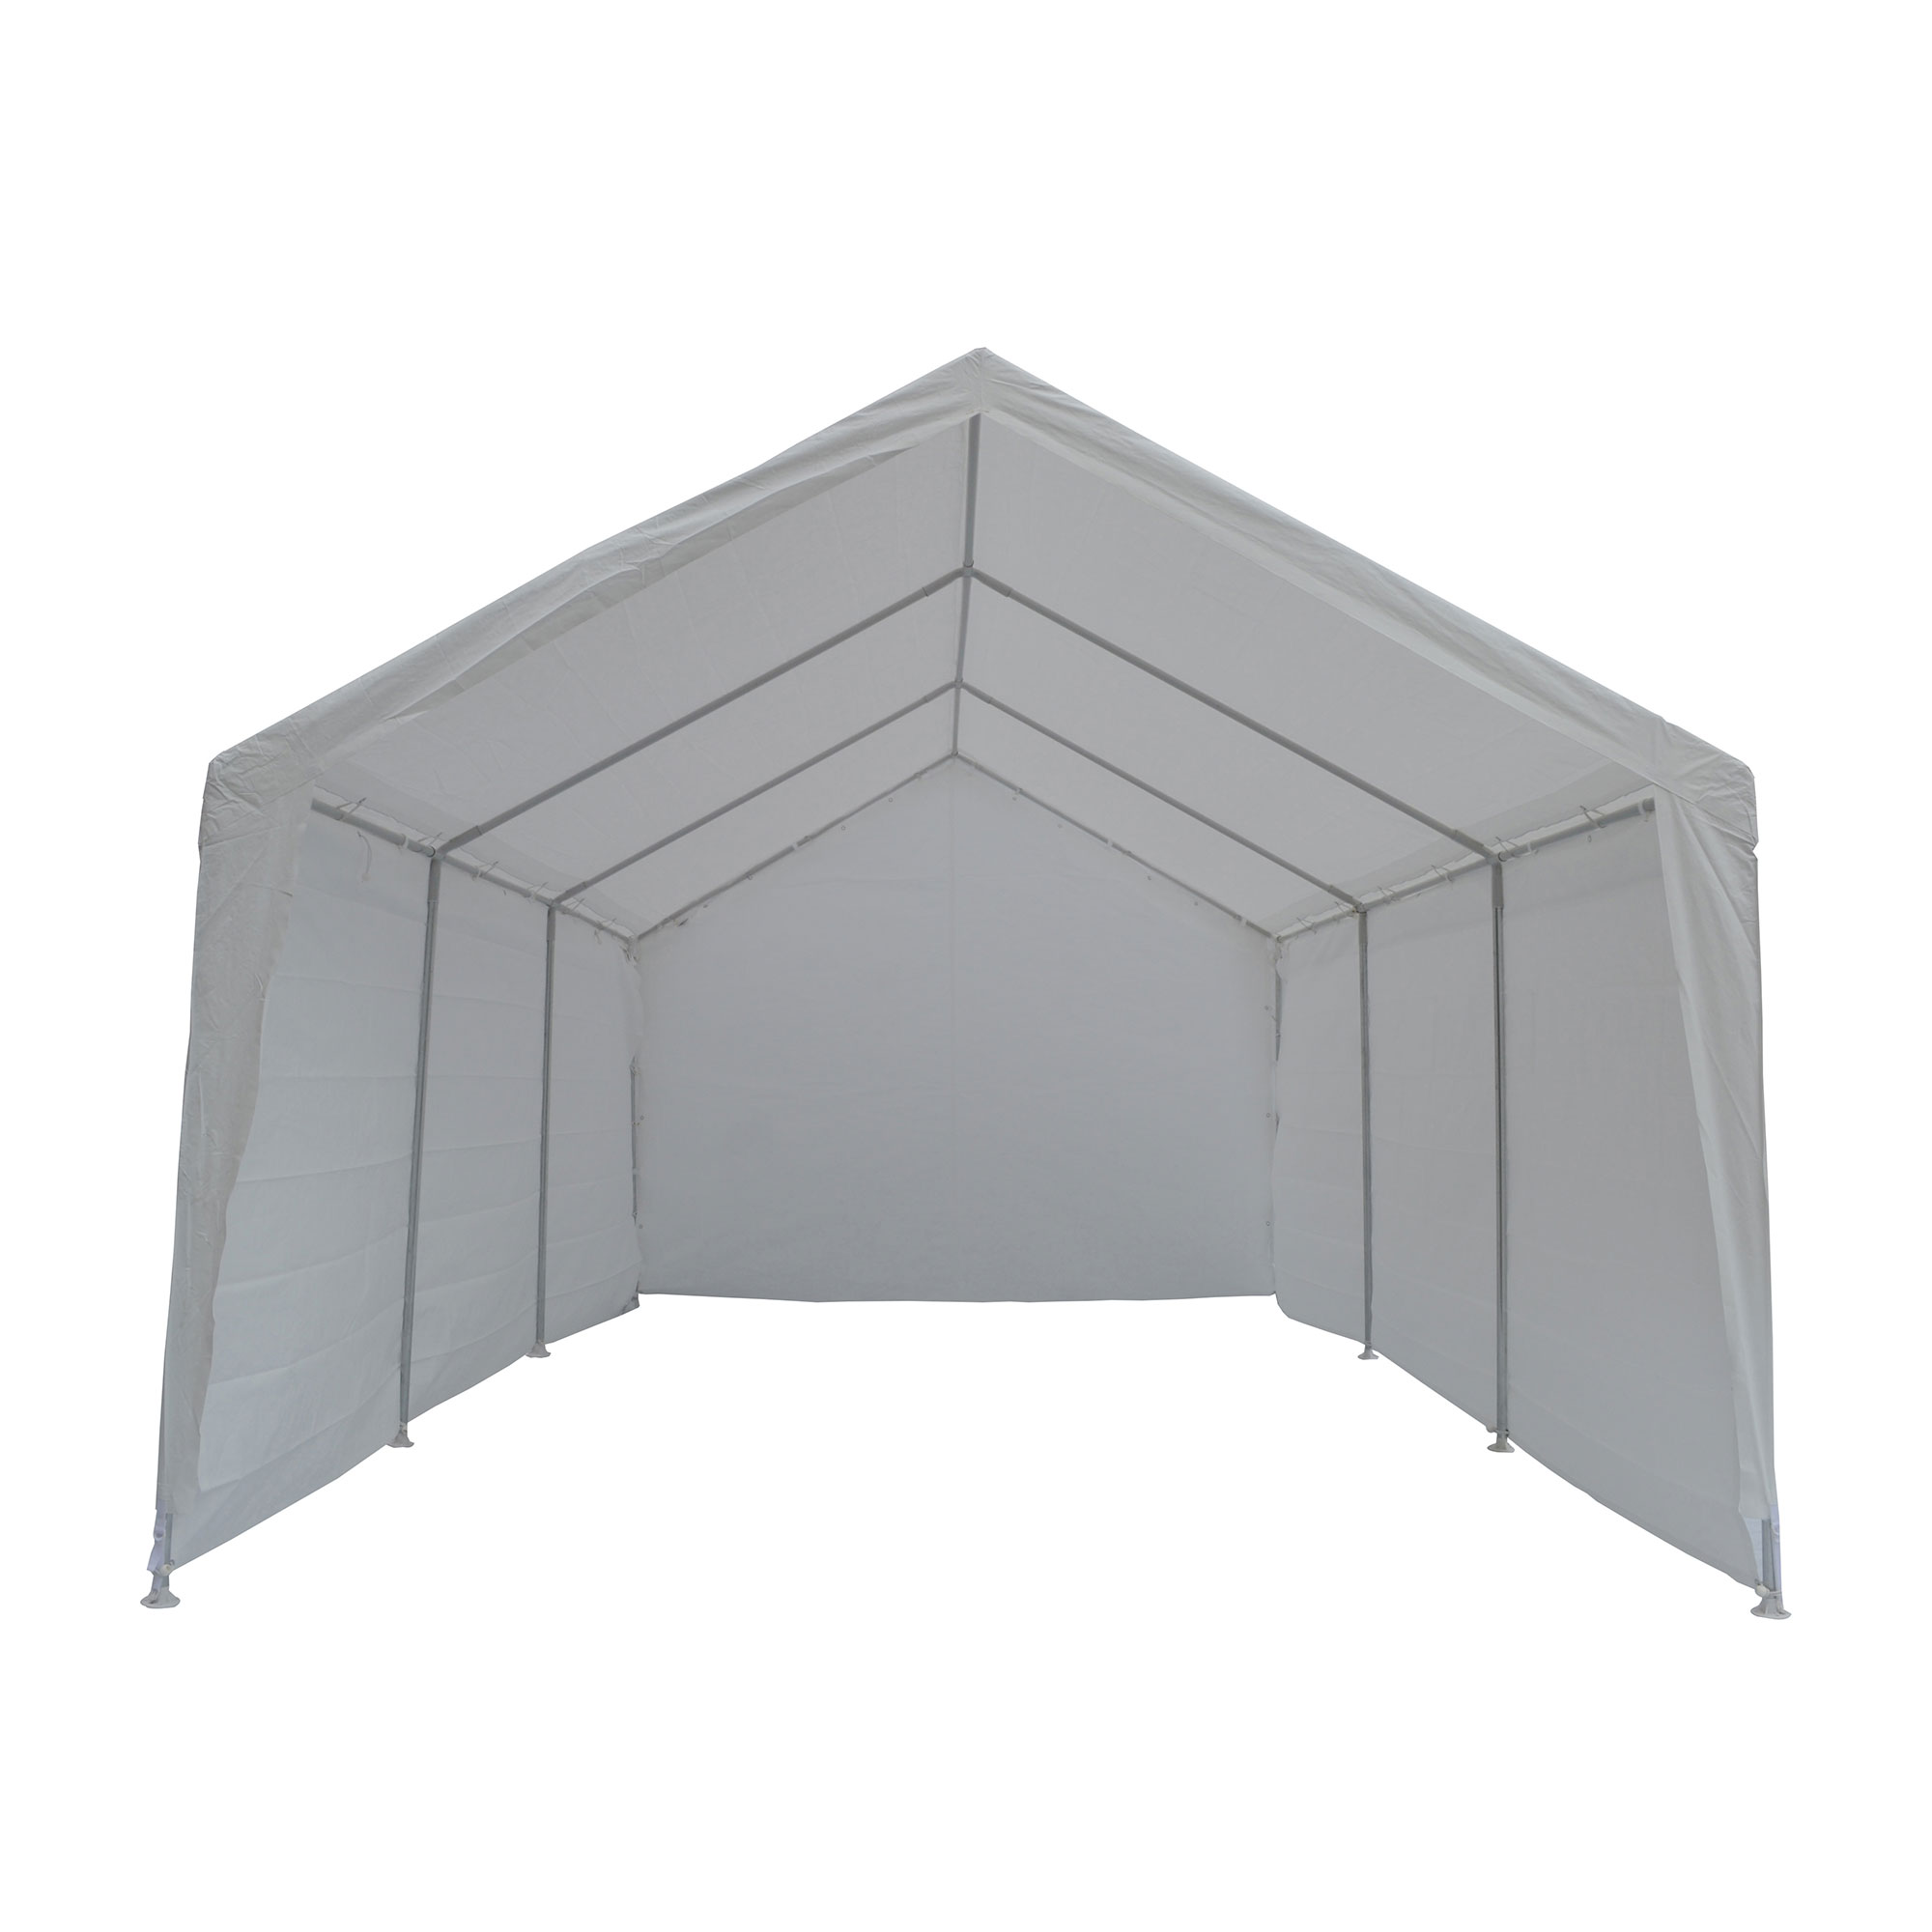 True Shelter 10' x 20' Car Canopy Gazebo Tent Cover 8 Legs Steel Frame Garage by TrueShelter